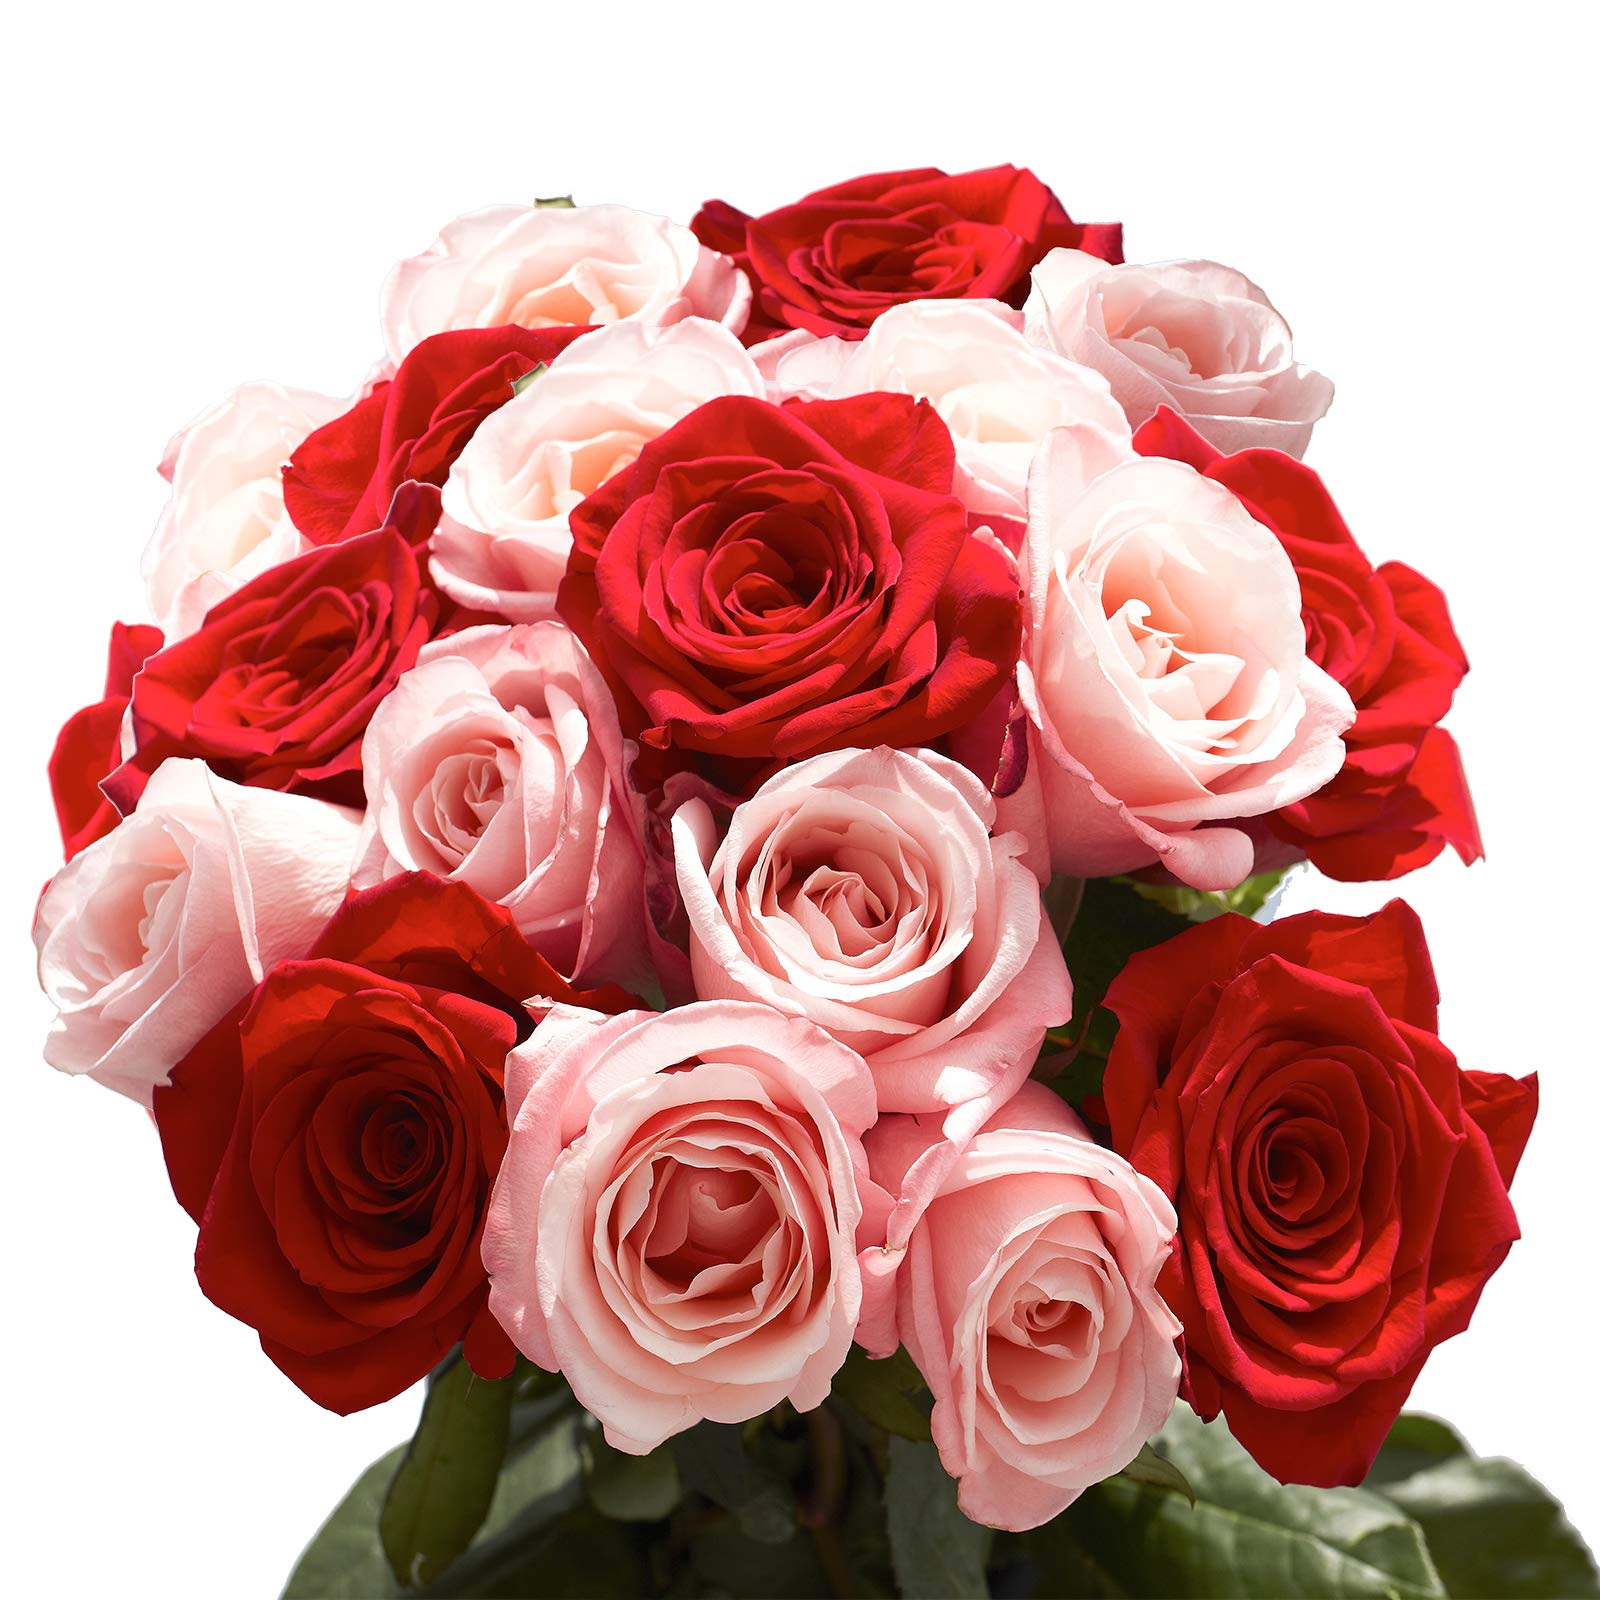 GlobalRose 50 Roses - 25 Red and 25 Pink - Express Flower Delivery by GlobalRose